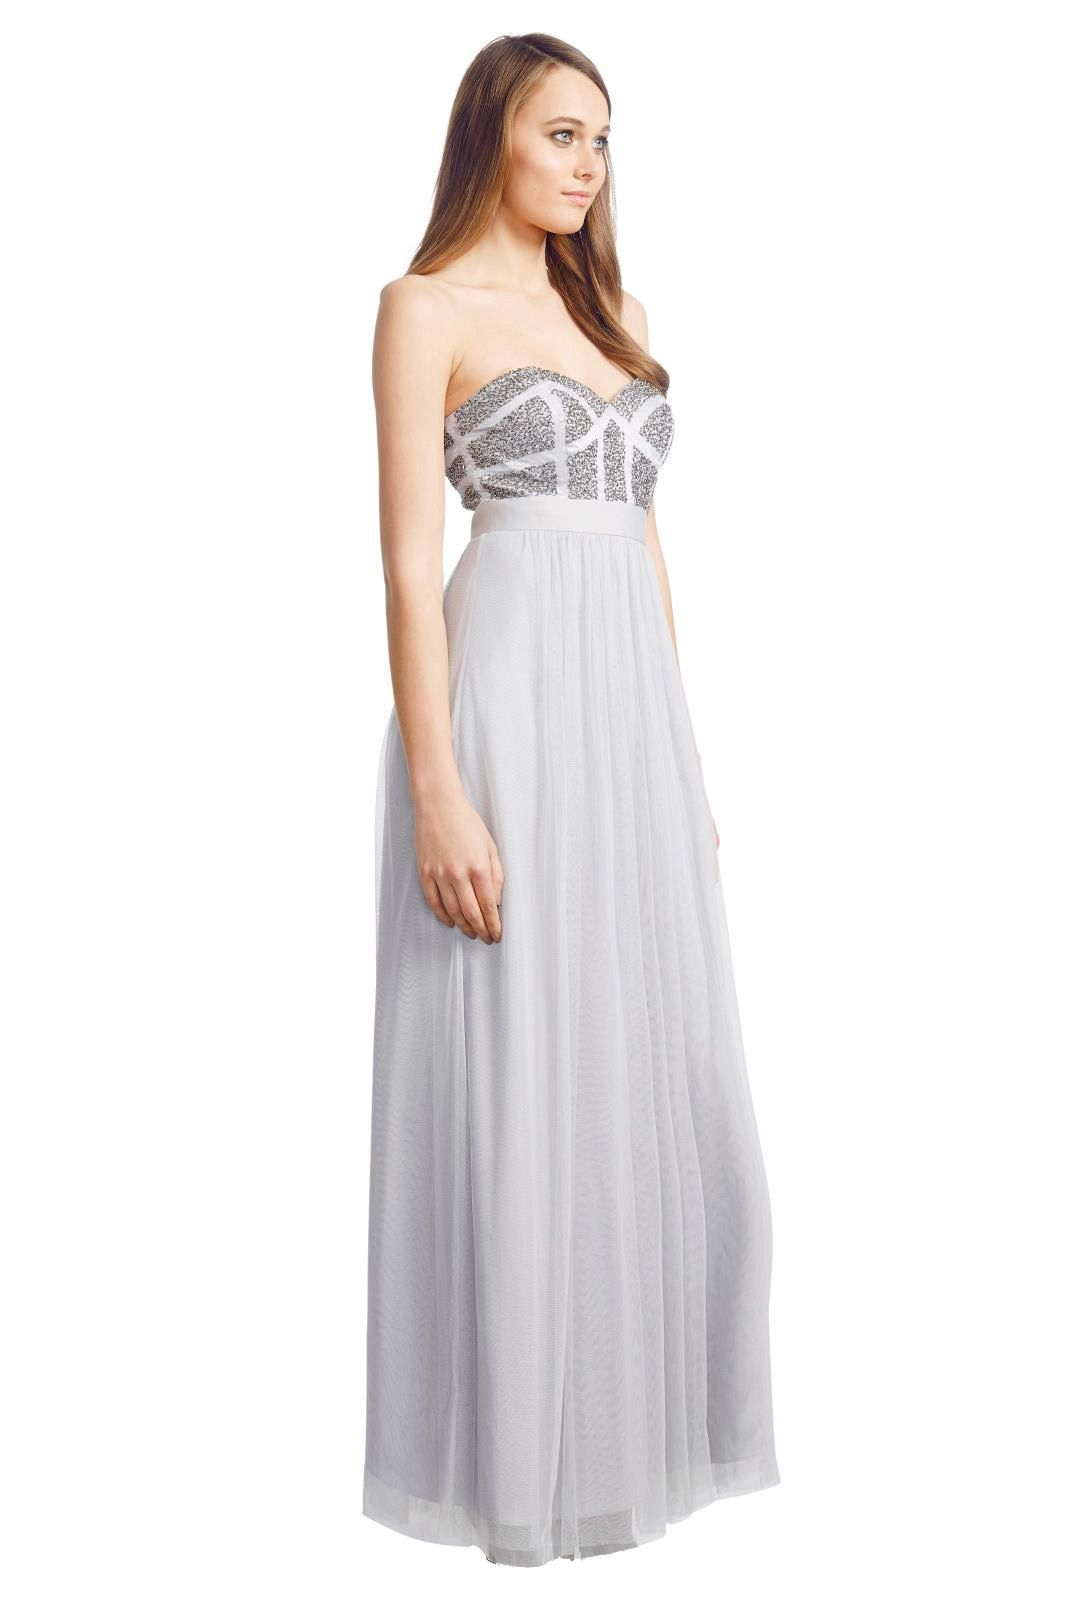 George - Pixel Gown - Silver - Side